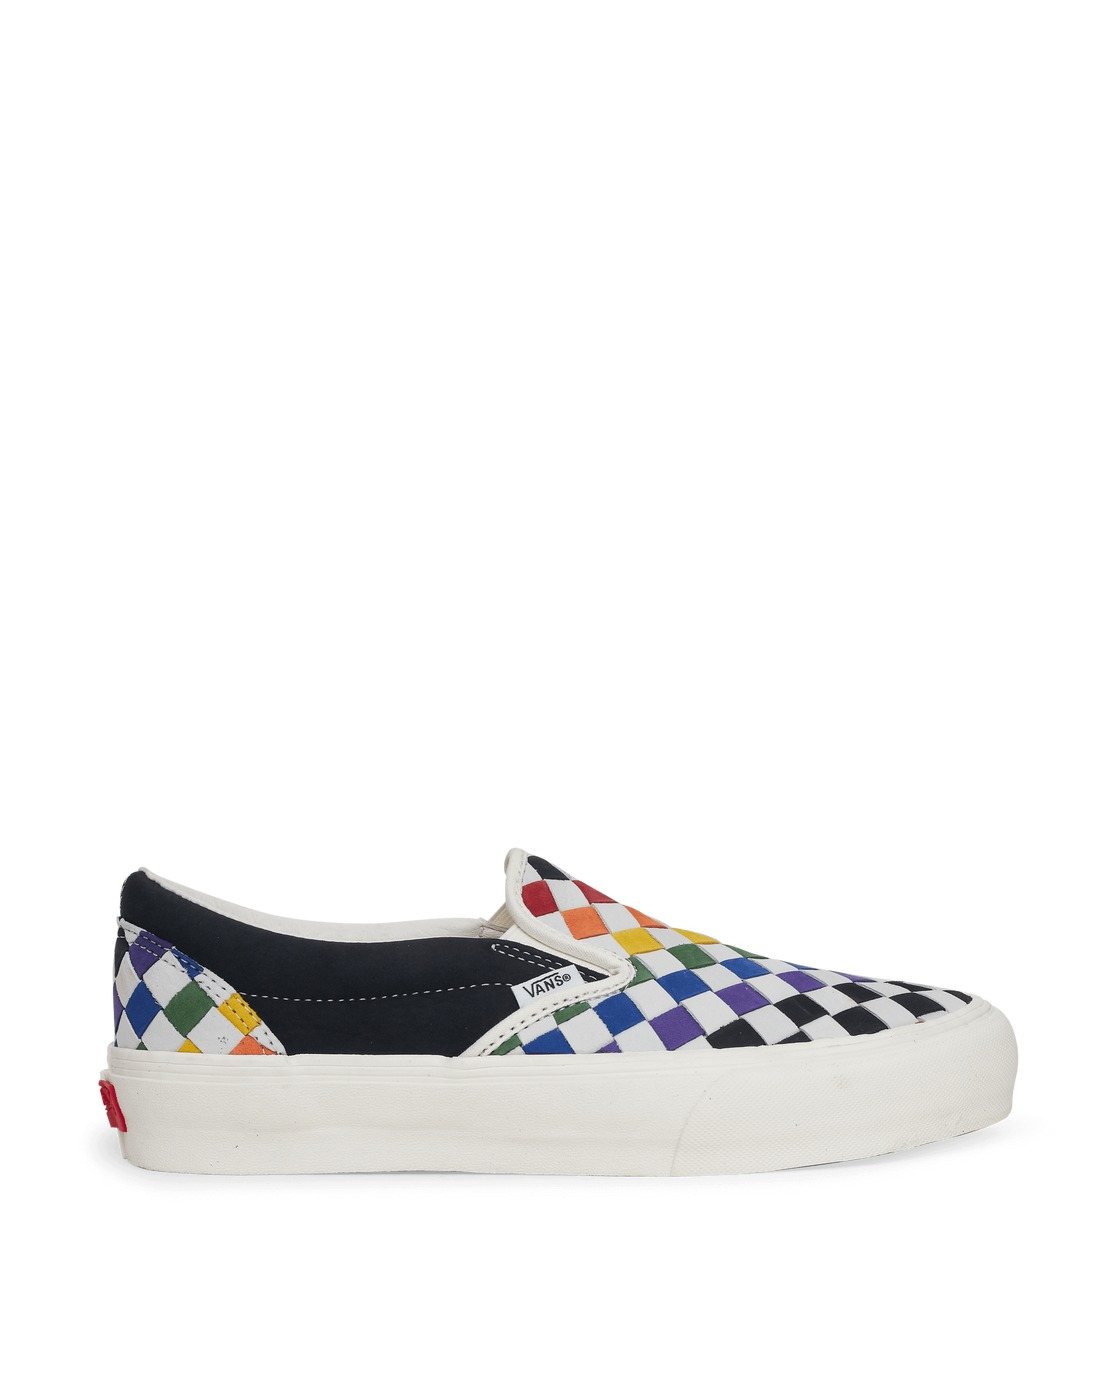 Photo: Vans Pride Classic Slip On Lx Sneakers Wovnlthrrnbwmshmlw